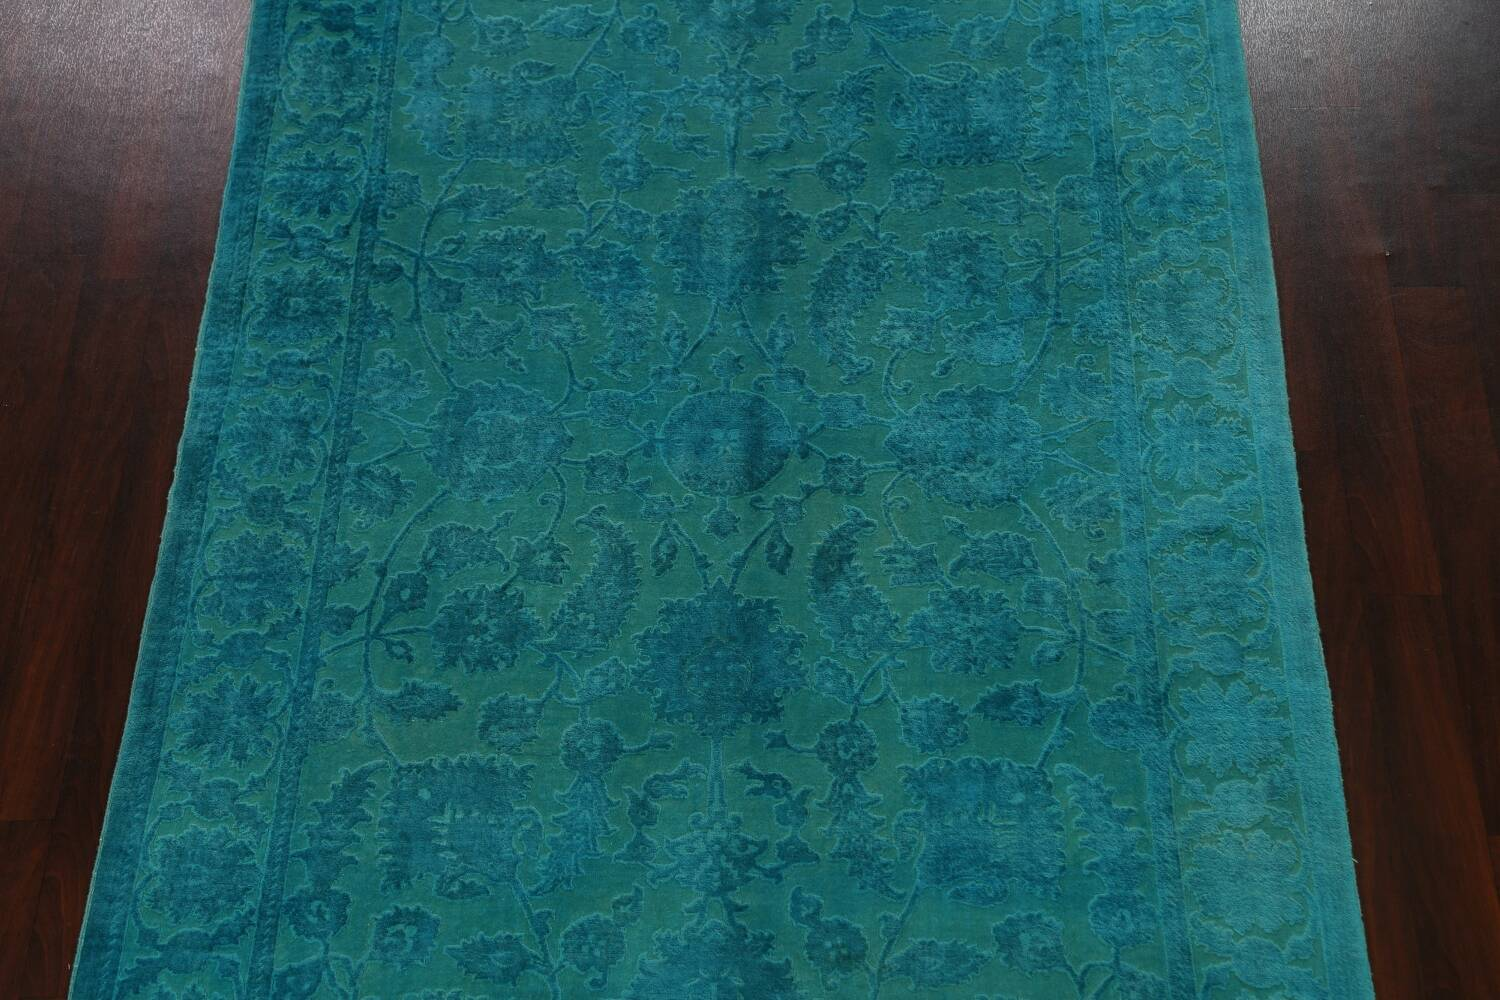 Vegetable Dye Carved Aqua Oushak Chobi Oriental Area Rug 6x9 image 3